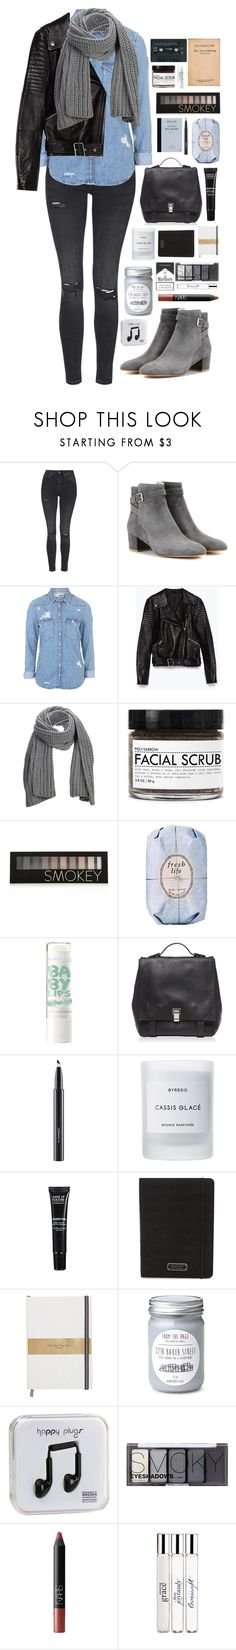 """But It's Better If You Do"" by ellac9914 ❤ liked on Polyvore featuring Topshop, Gianvito Rossi, Zara, SELECTED, Fig+Yarrow, Forever 21, Fresh, Proenza Schouler, MAC Cosmetics and Byredo"